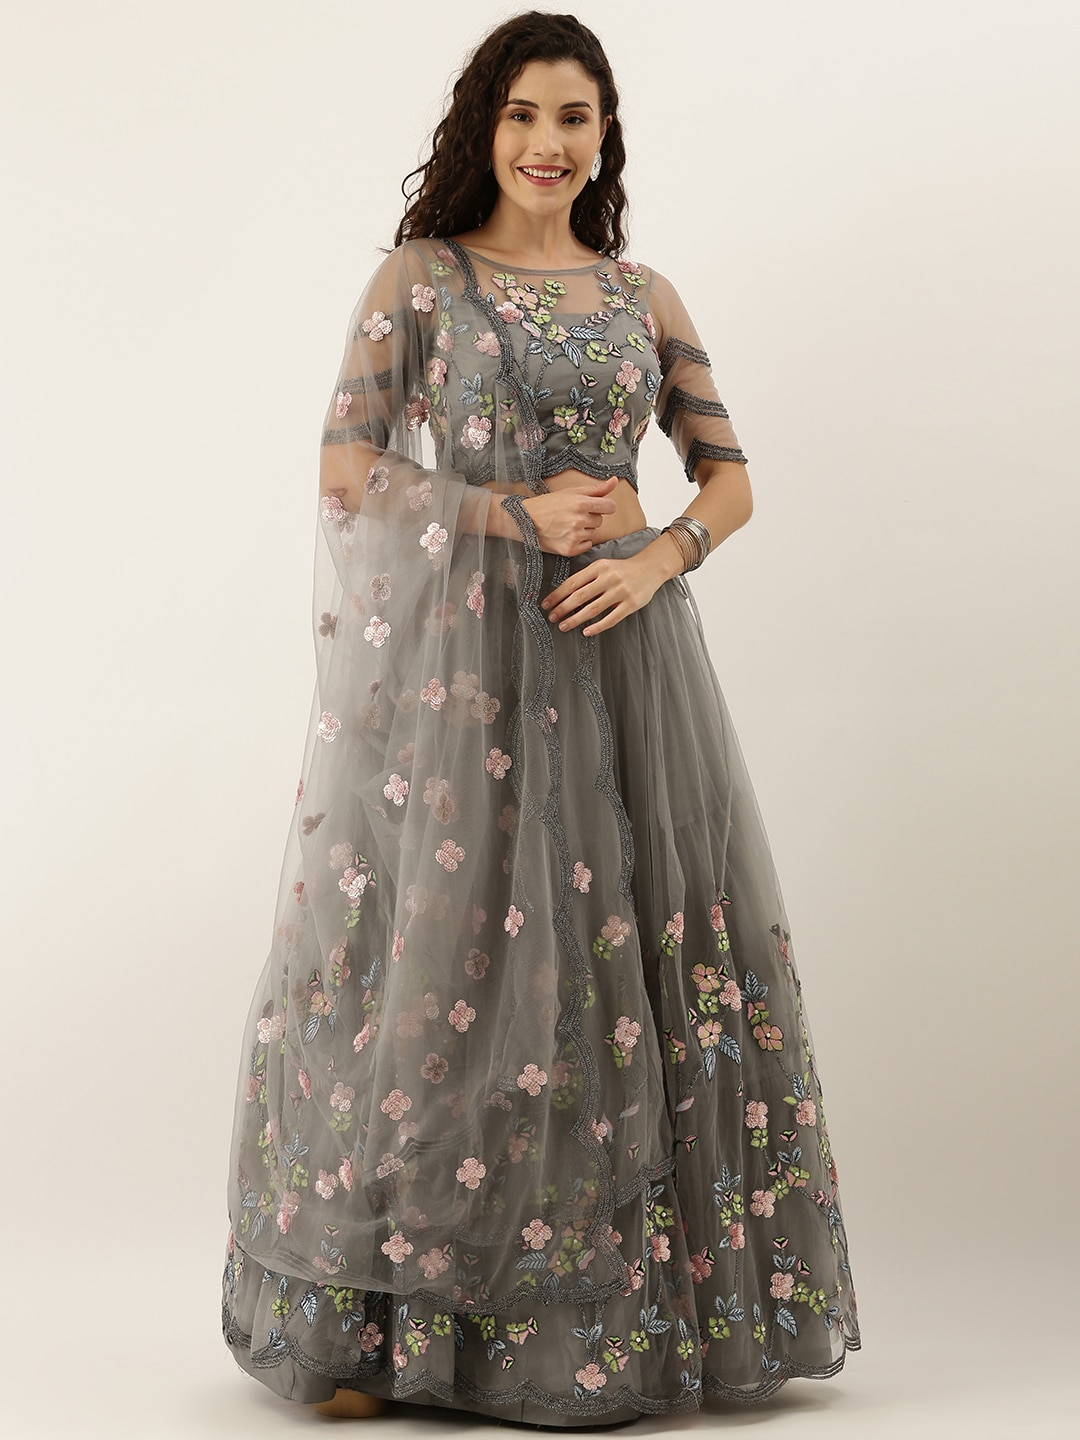 panchhi Grey & Pink Embroidered Semi-Stitched Lehenga & Unstitched Blouse with Dupatta